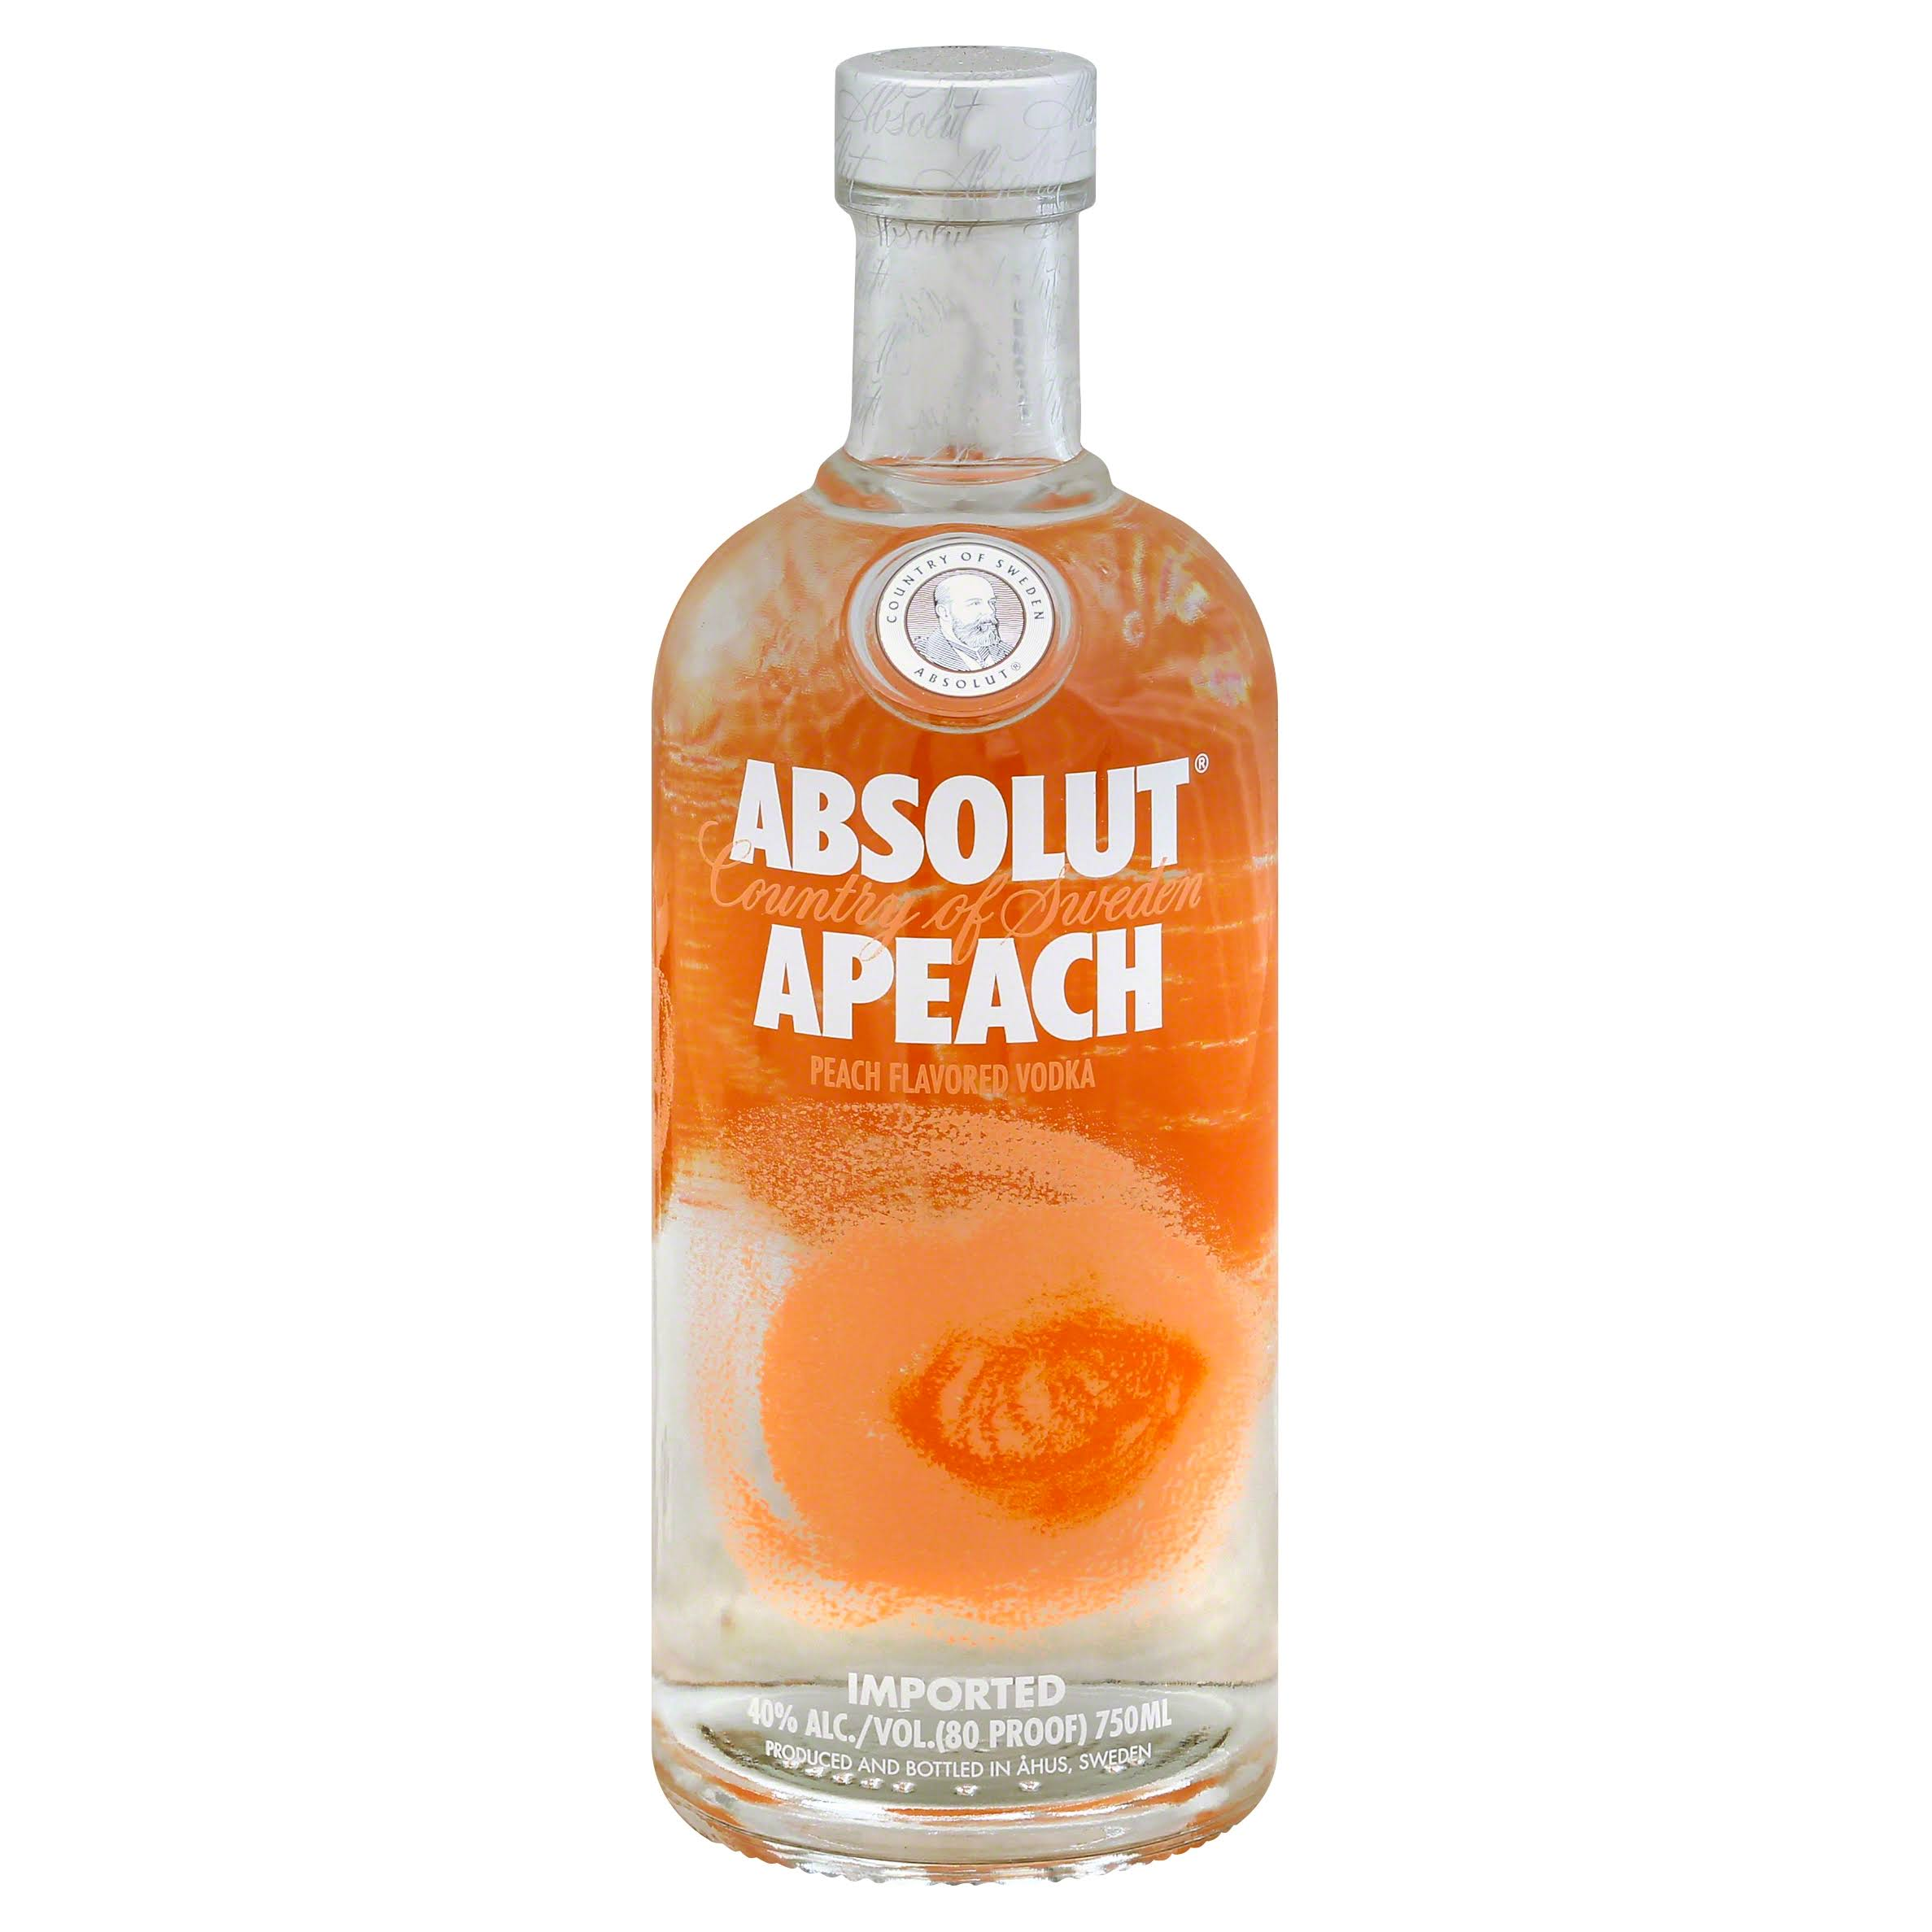 Absolut Apeach Vodka - Peach